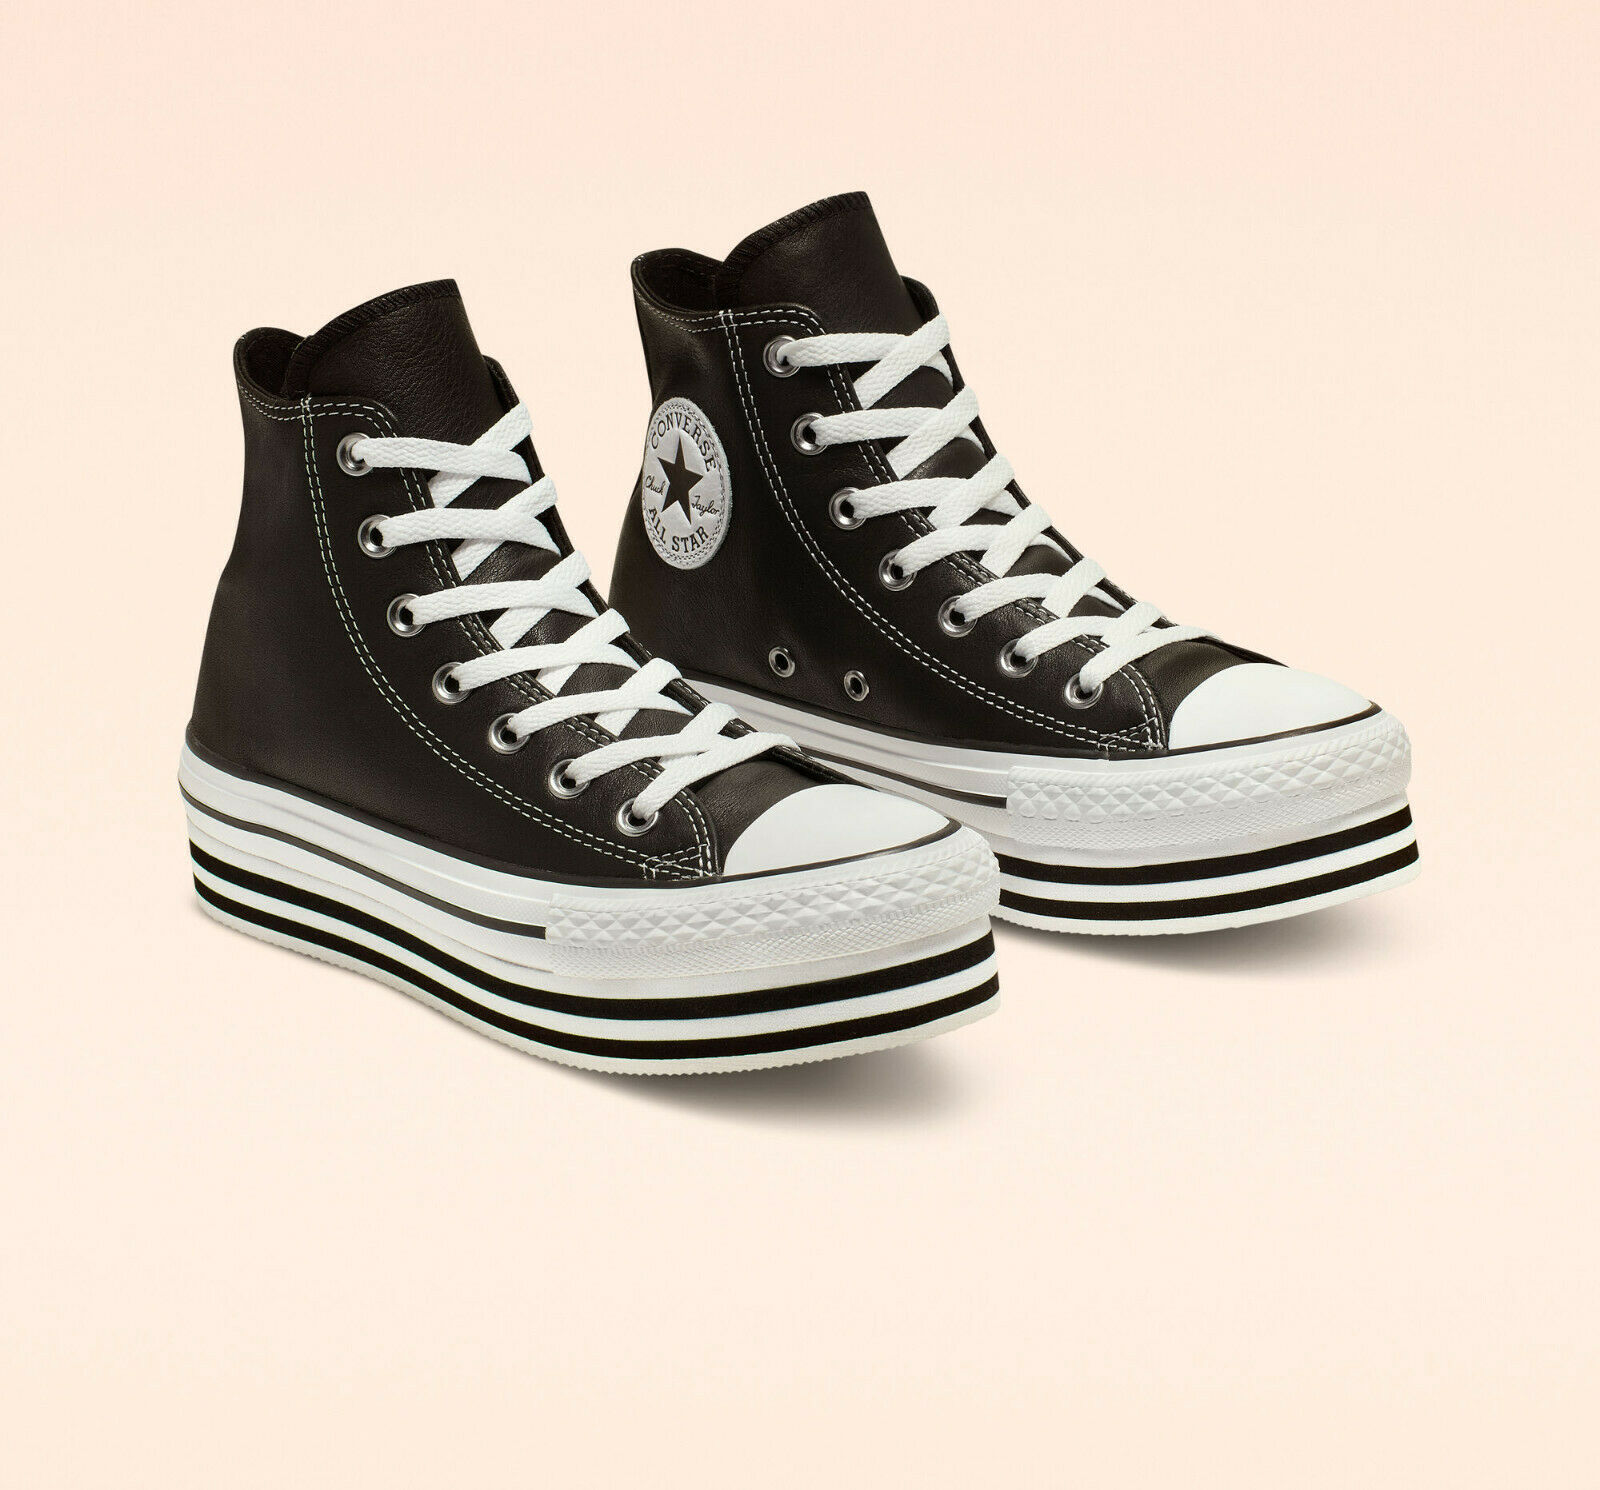 Details about NEW Converse Chuck Taylor All Star Platform High Top Black Leather Women's 6.5